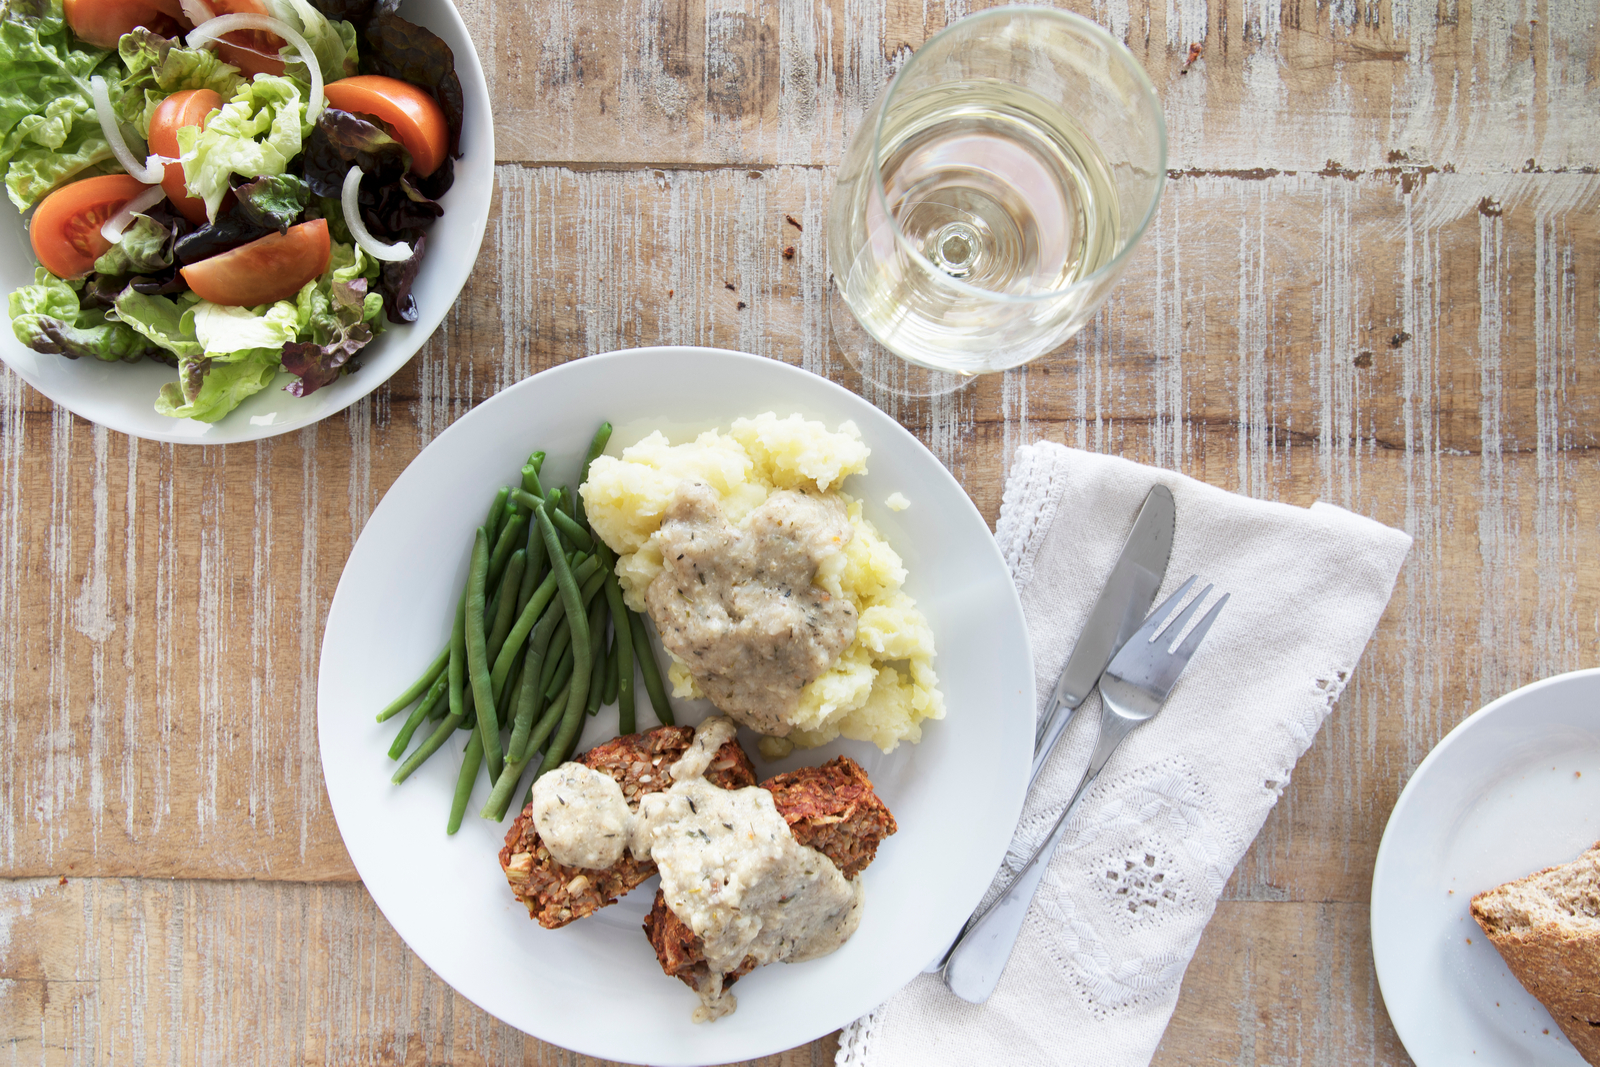 Chickpea Vegan Meatloaf | Vegan Thanksgiving Ideas: 9 Dishes For A Delicious Meal